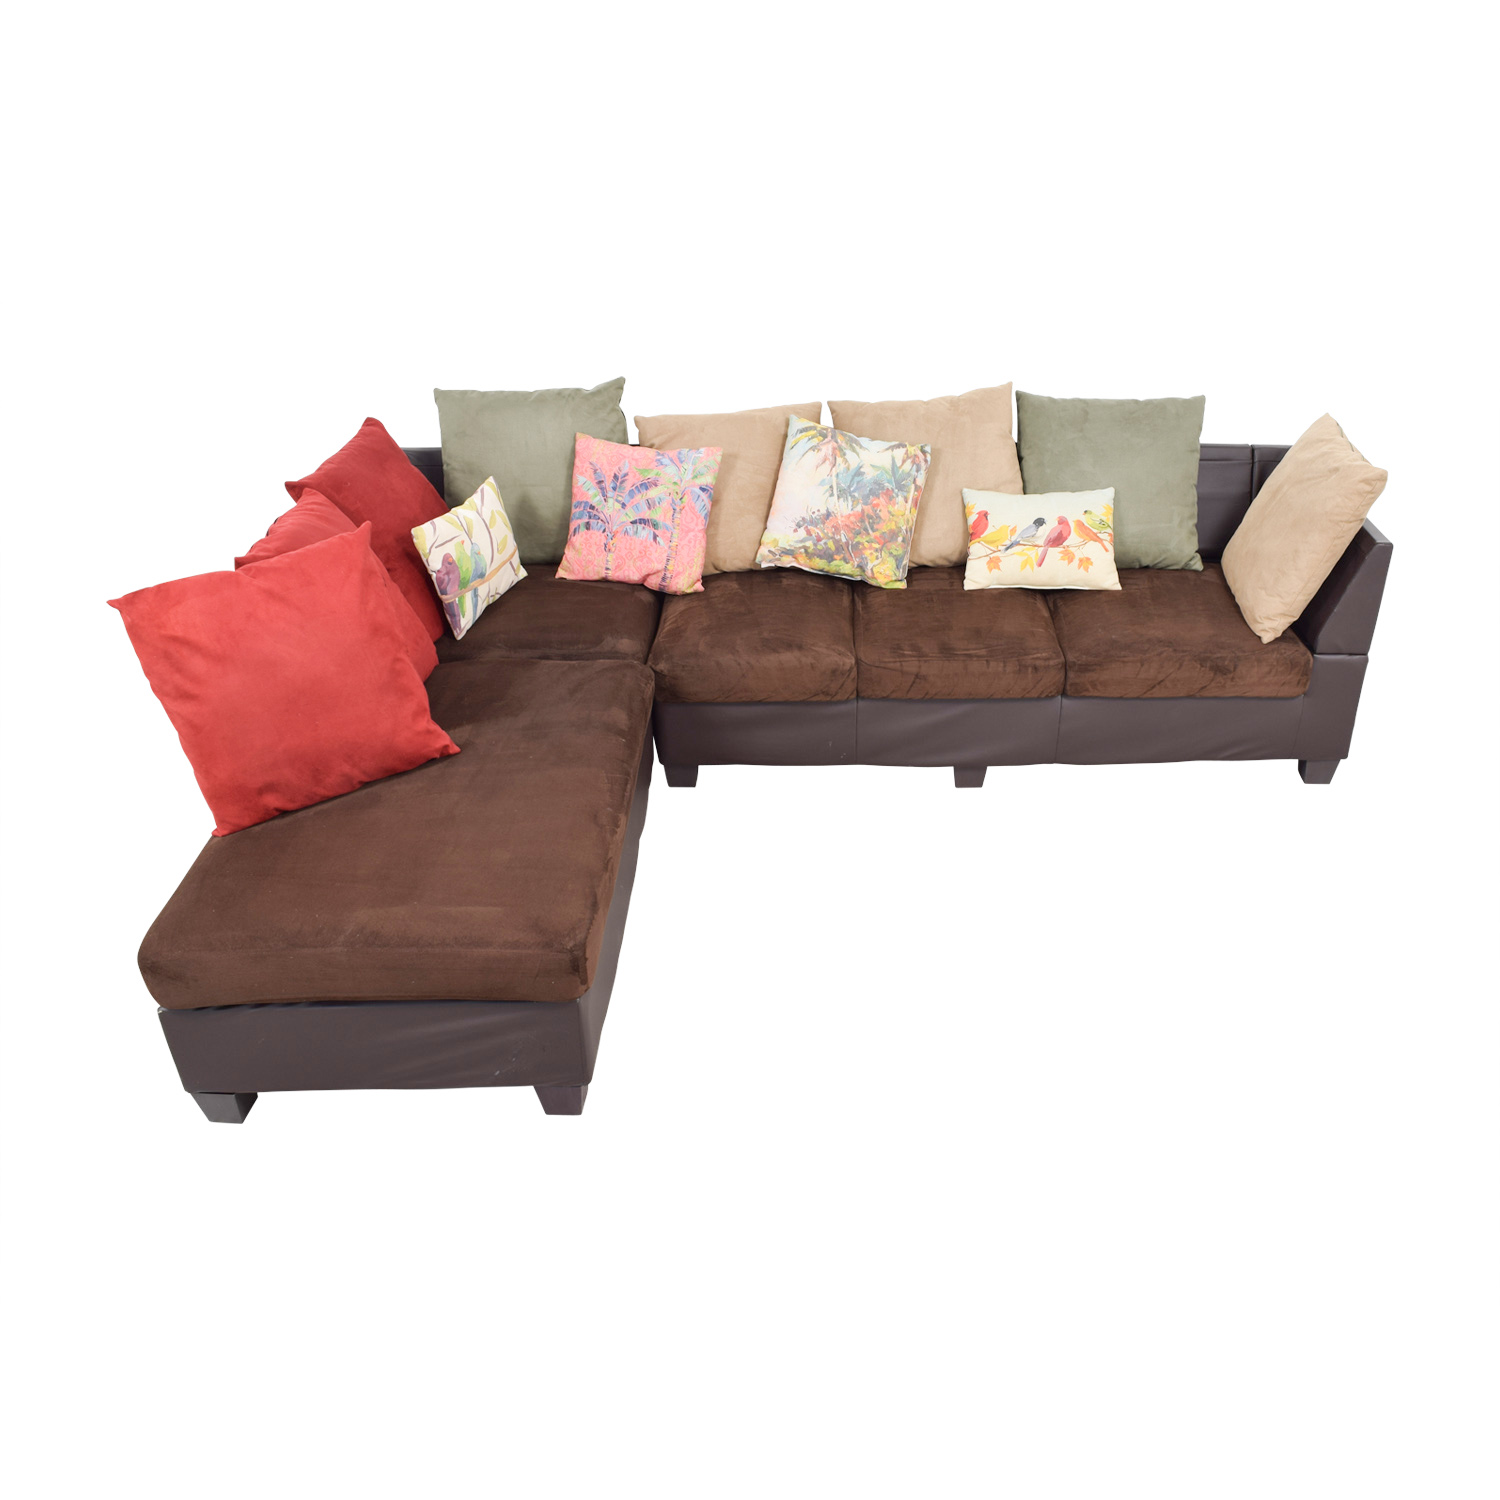 shop Downtown Furniture Brown Multi-Fabric L-Shapes Sectional with Toss Pillows Downtown Furniture